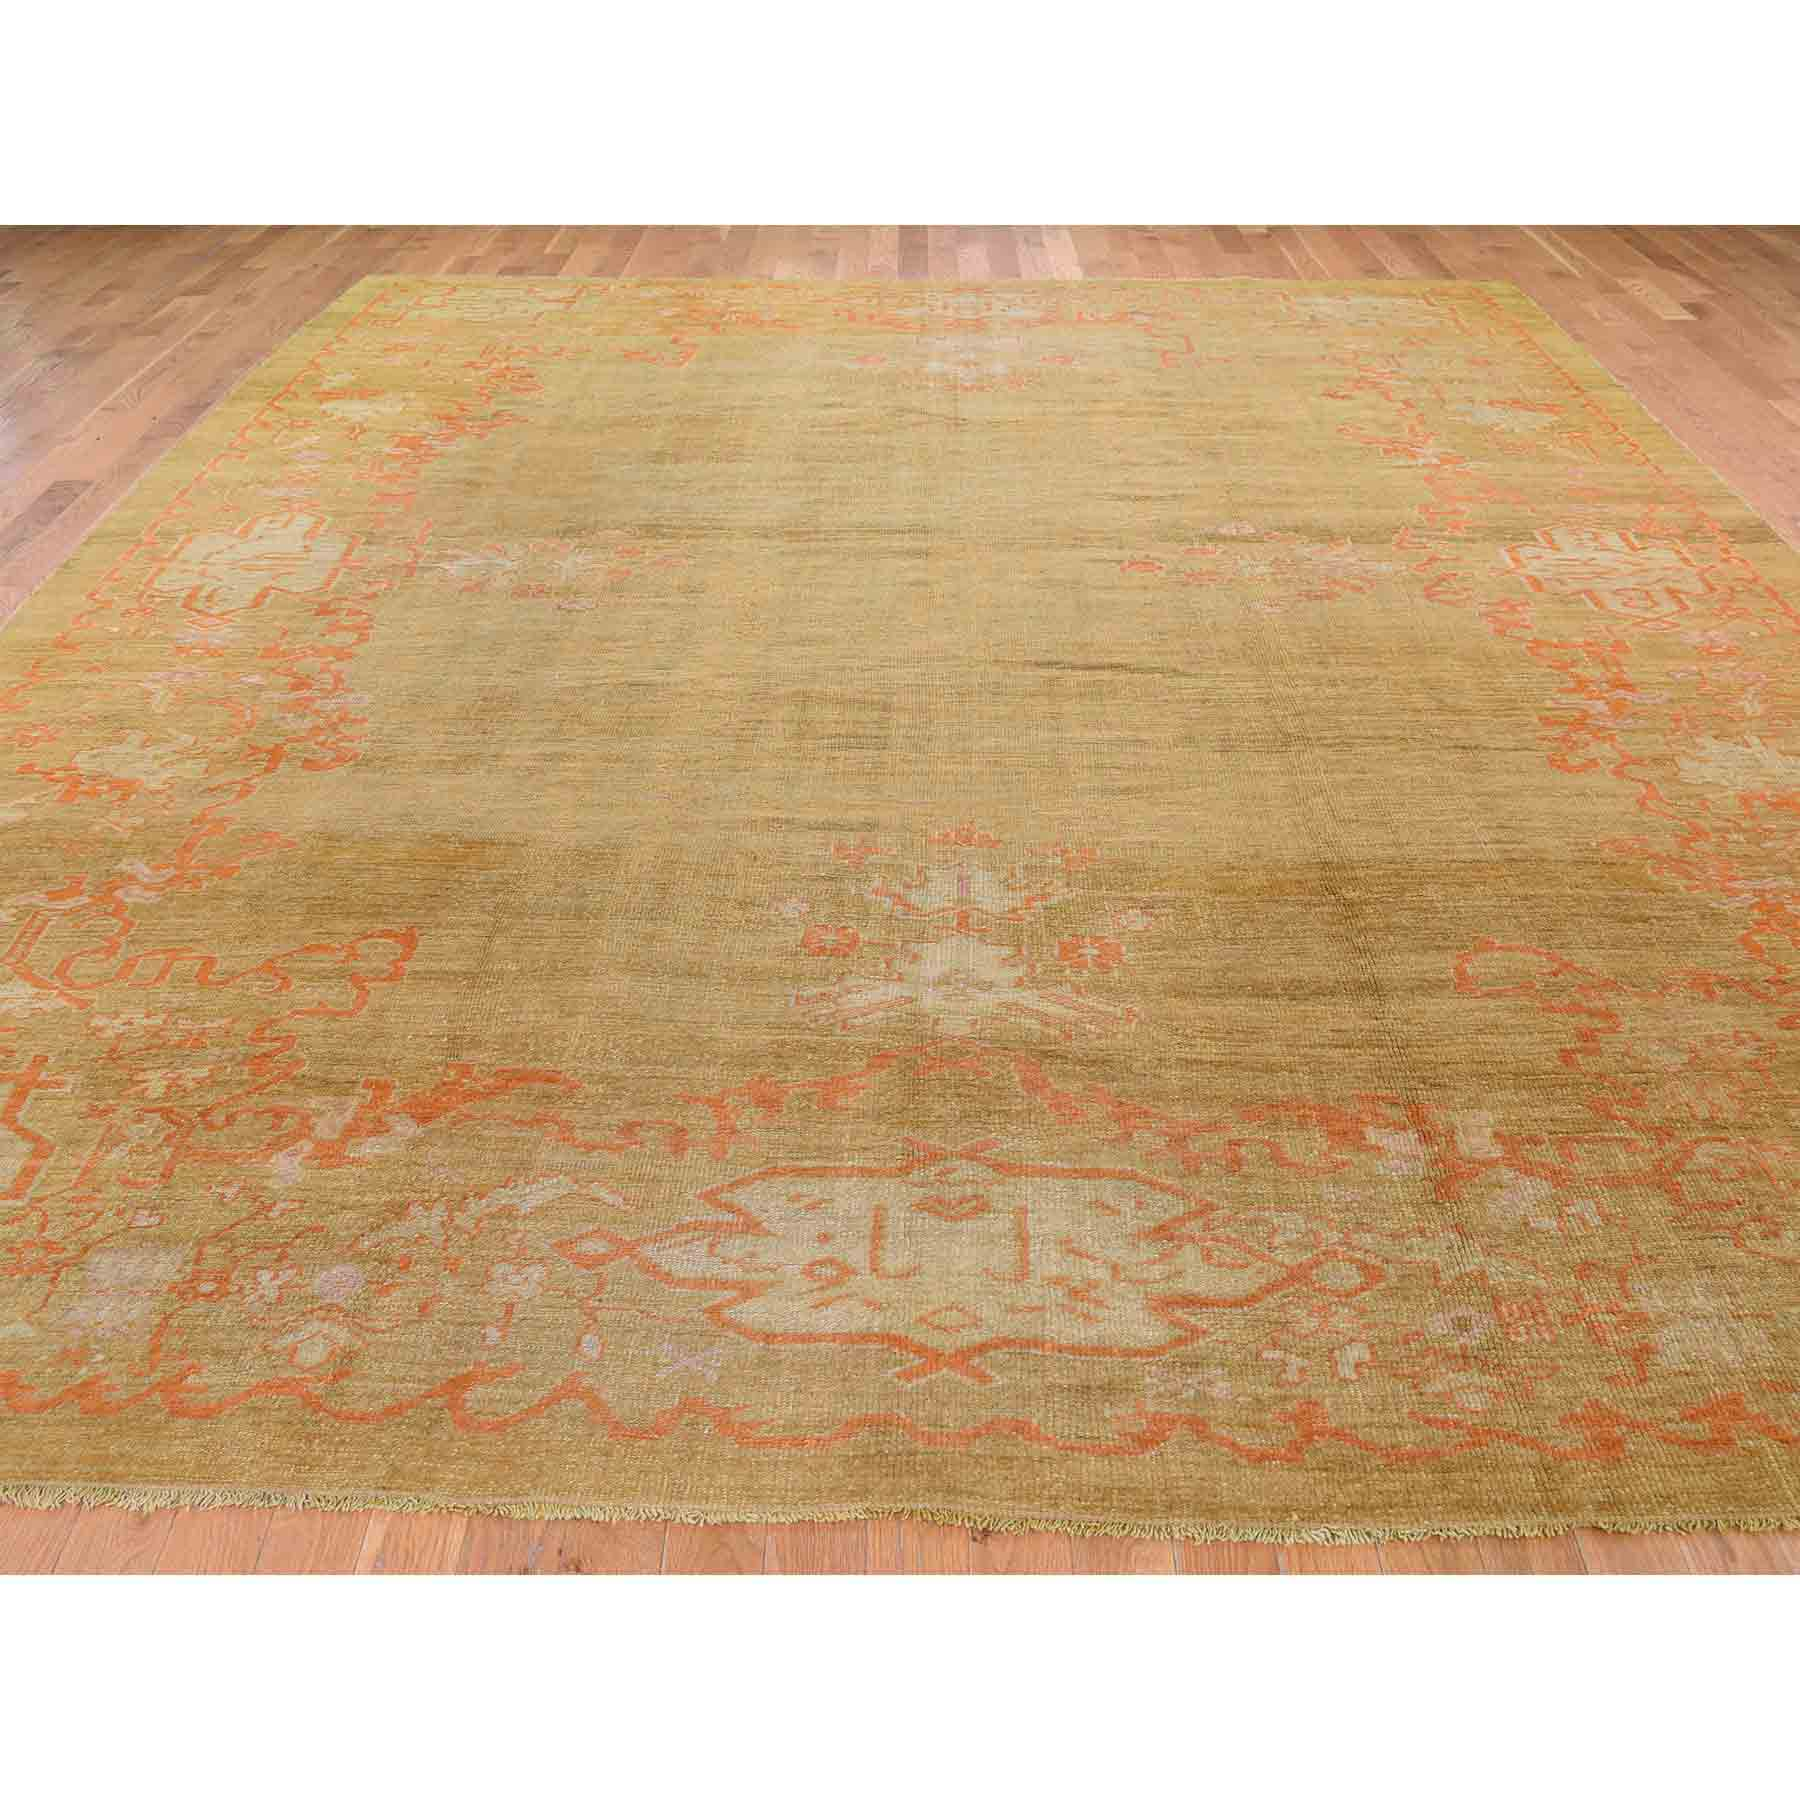 Antique-Hand-Knotted-Rug-232215